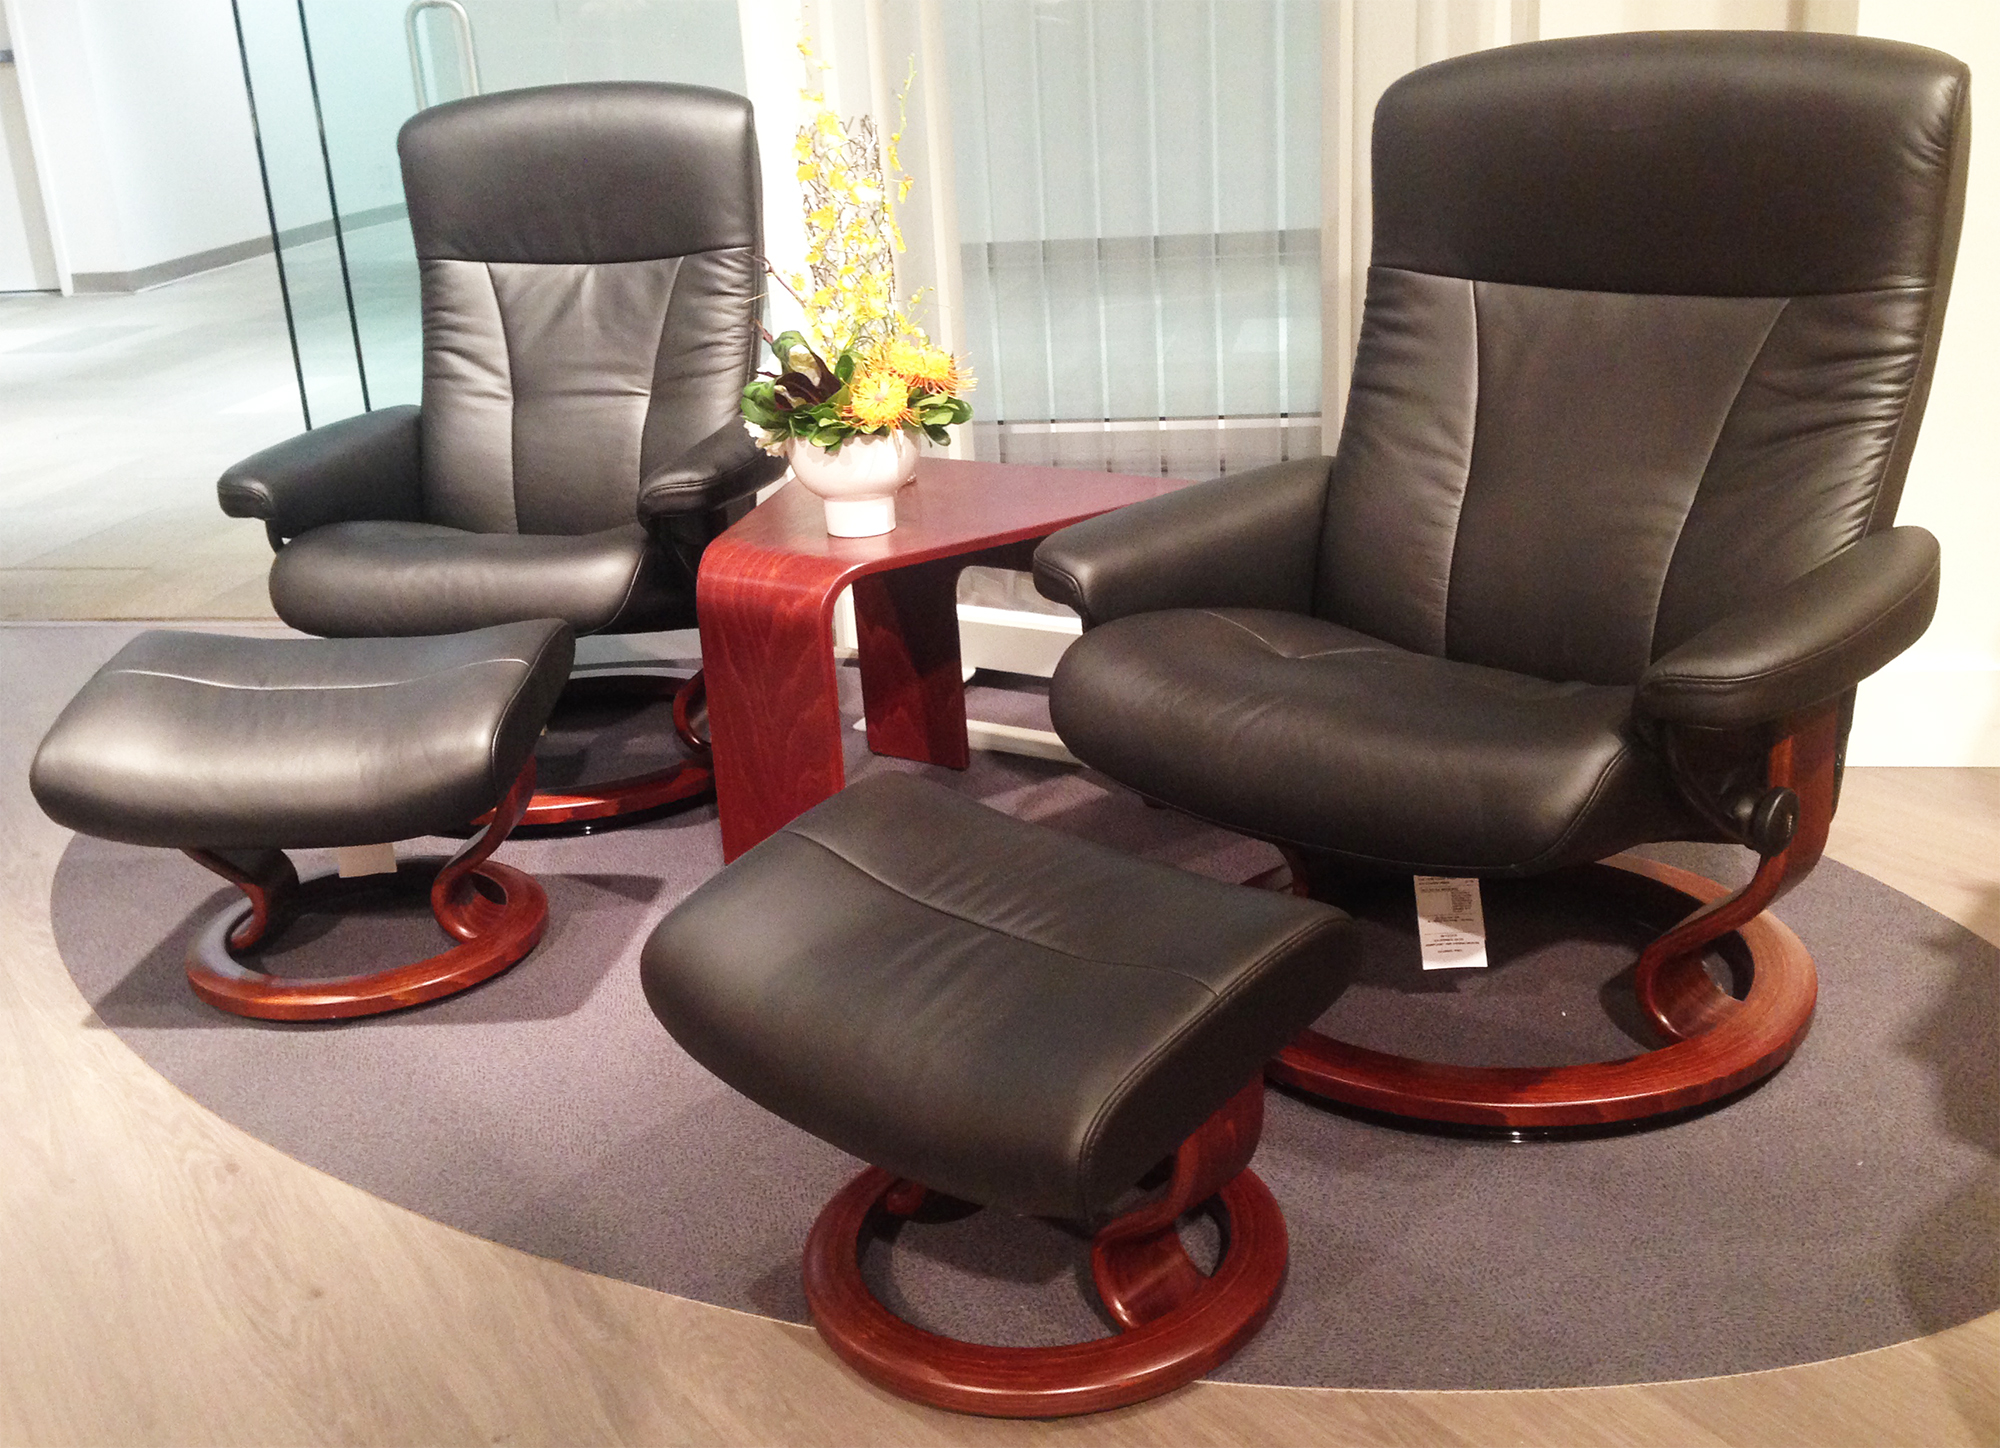 stressless chair prices. Stressless President Recliner Chair And Ottoman Prices U